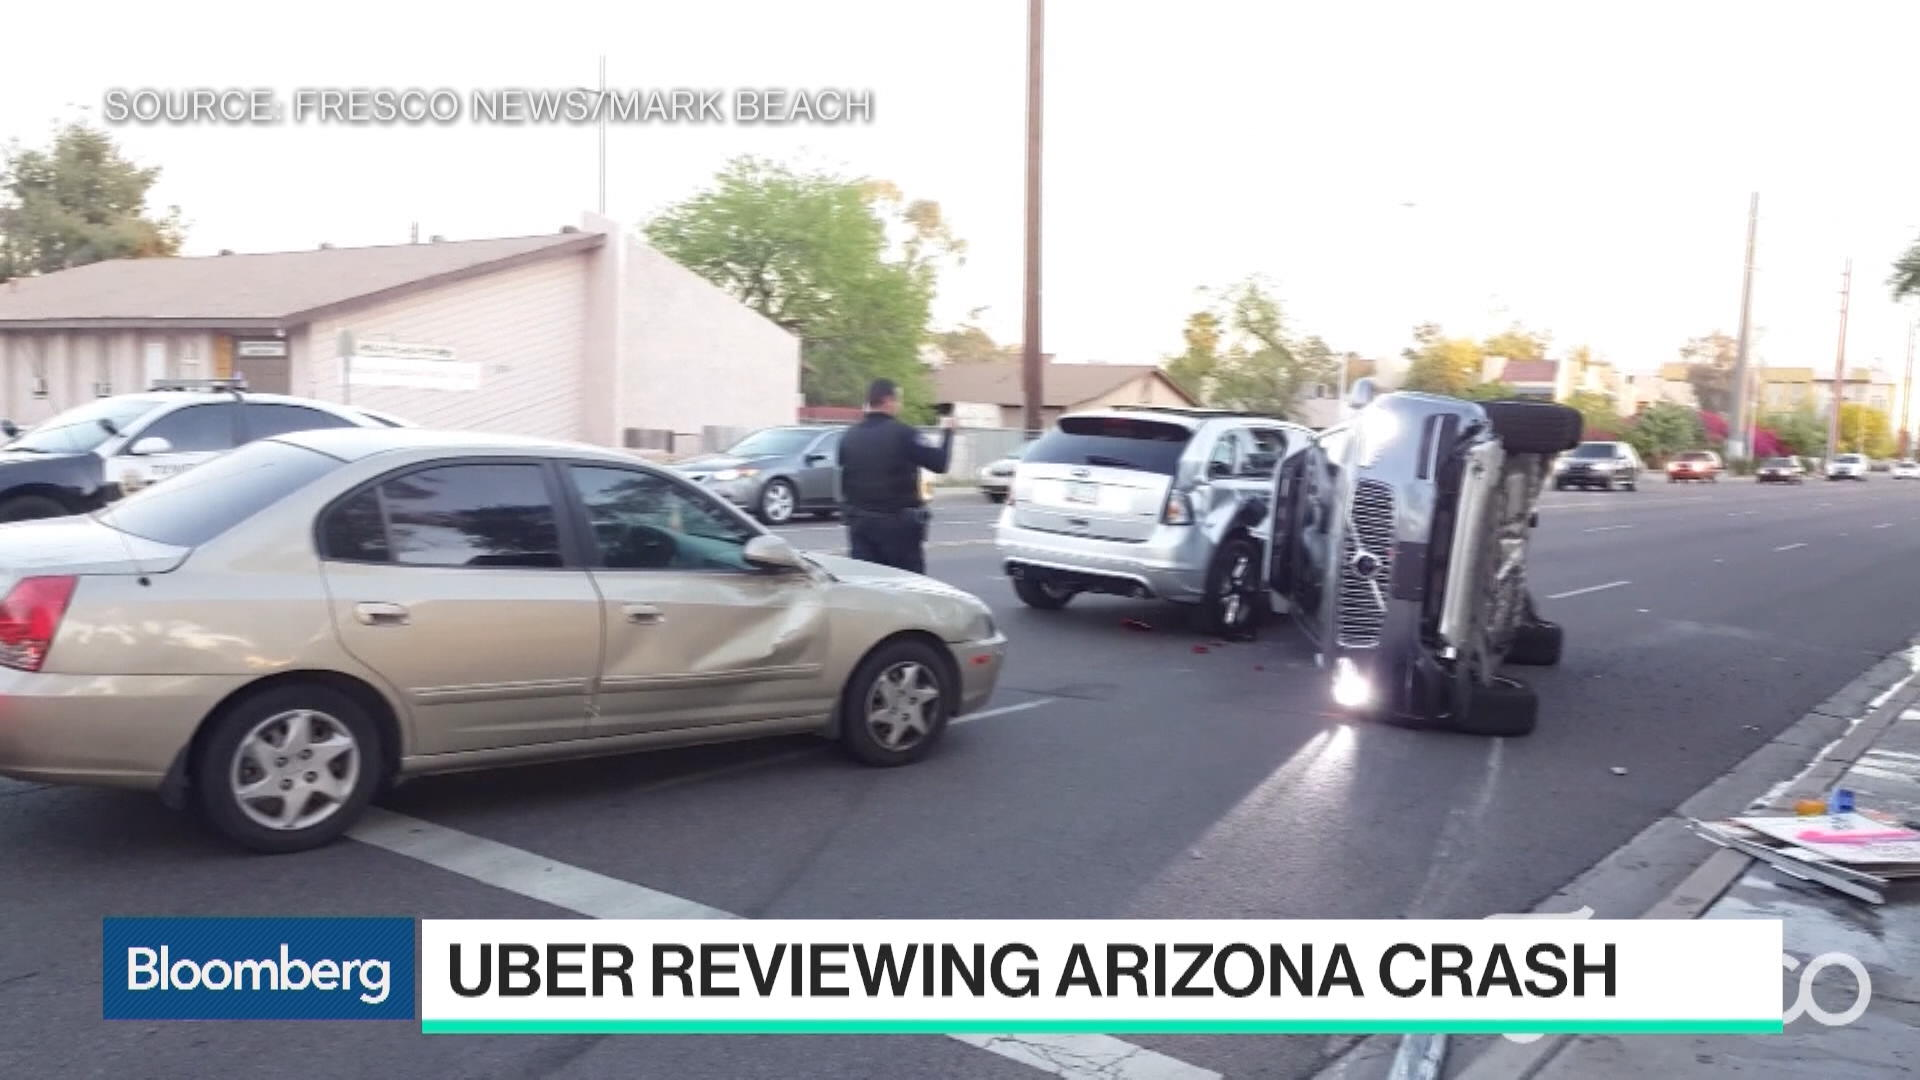 Uber Crash Shows Human Traits in Self-Driving Software - Bloomberg